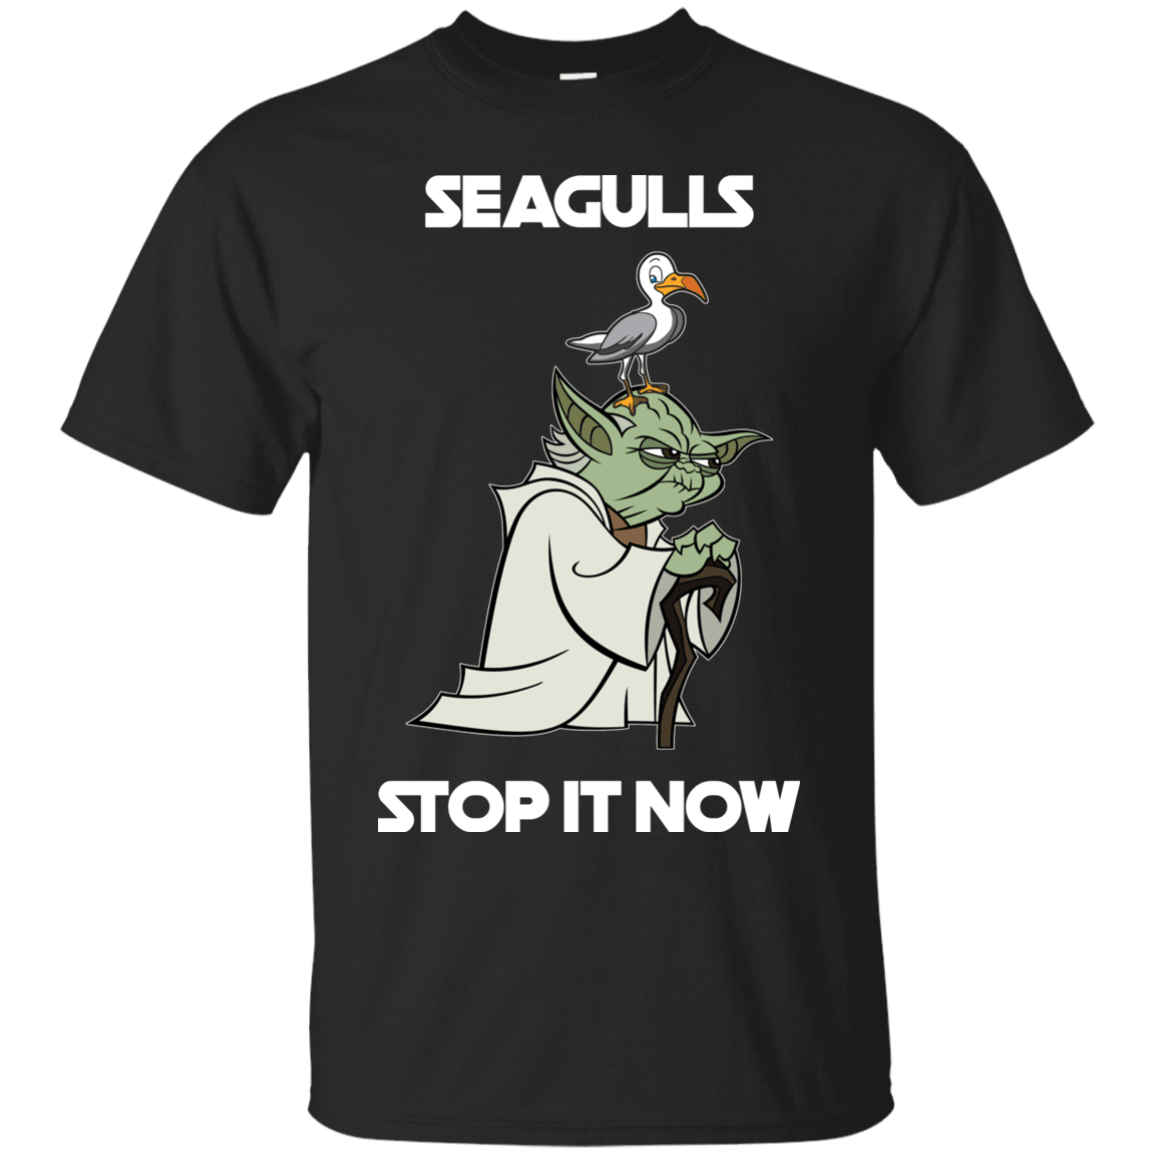 Seagulls Stop It Now T Shirt Tank Long Sleeve Graphic Tee Gift T-Shirt